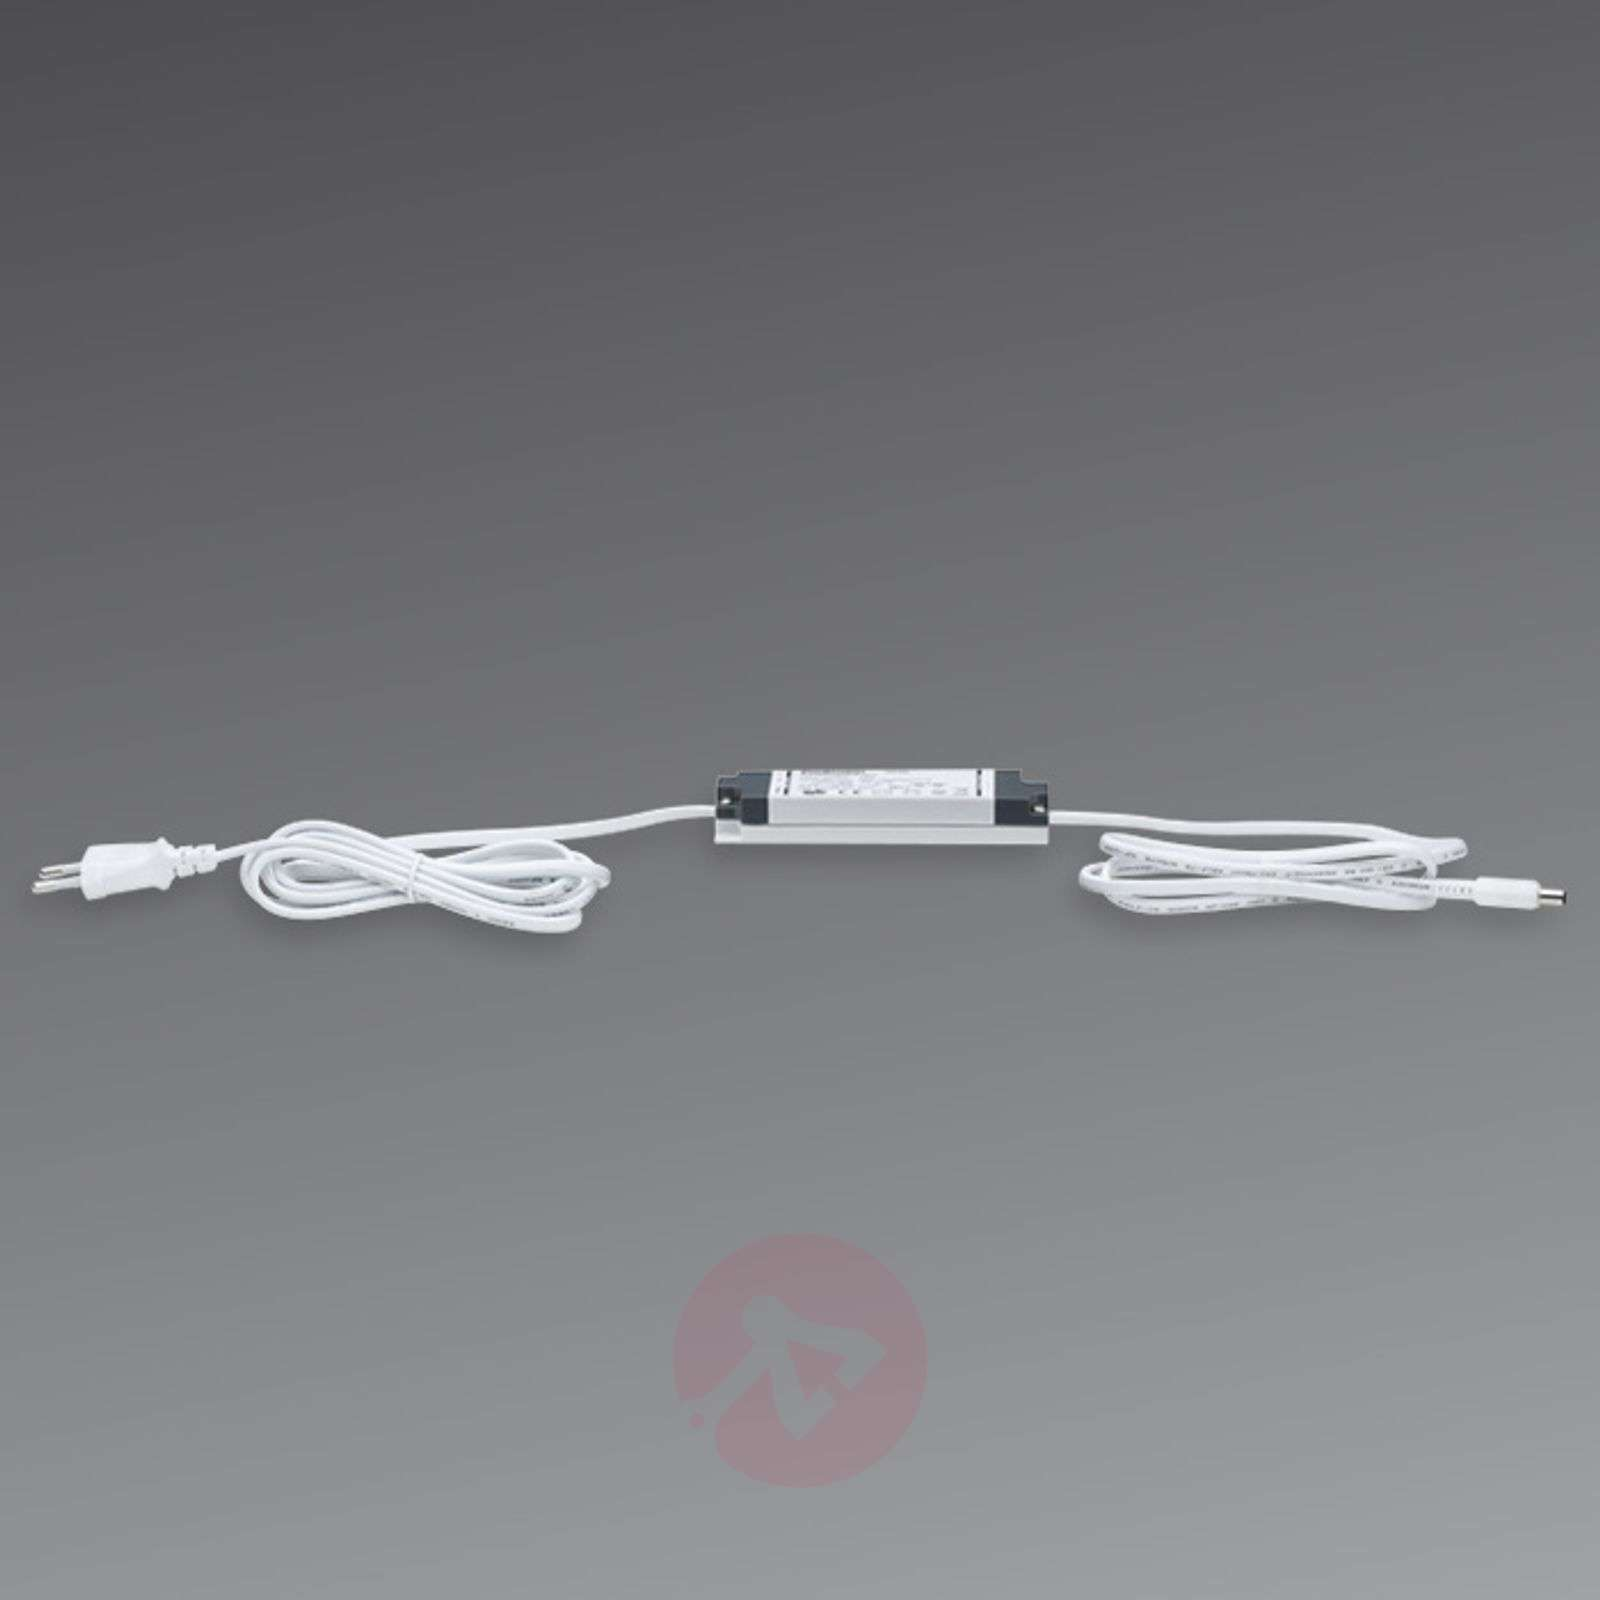 LED driver 15 W for the LED strip series CAJA-7600227-01